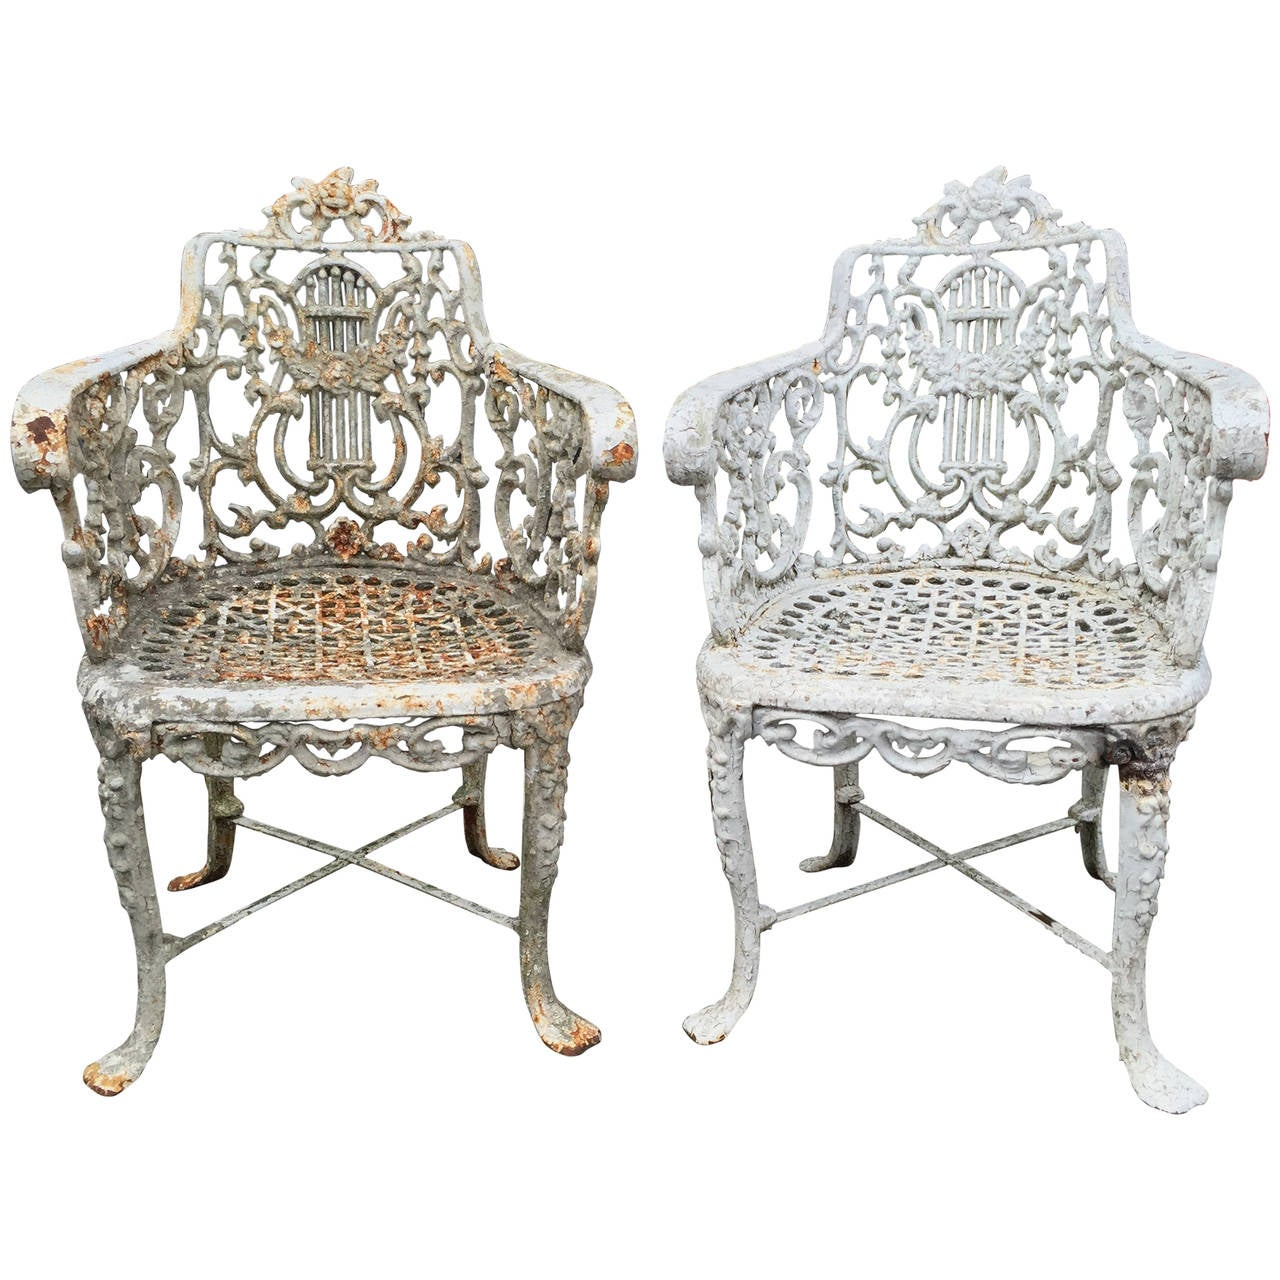 cast iron outdoor chairs chair for sit stand desk pair of english garden late 19th century